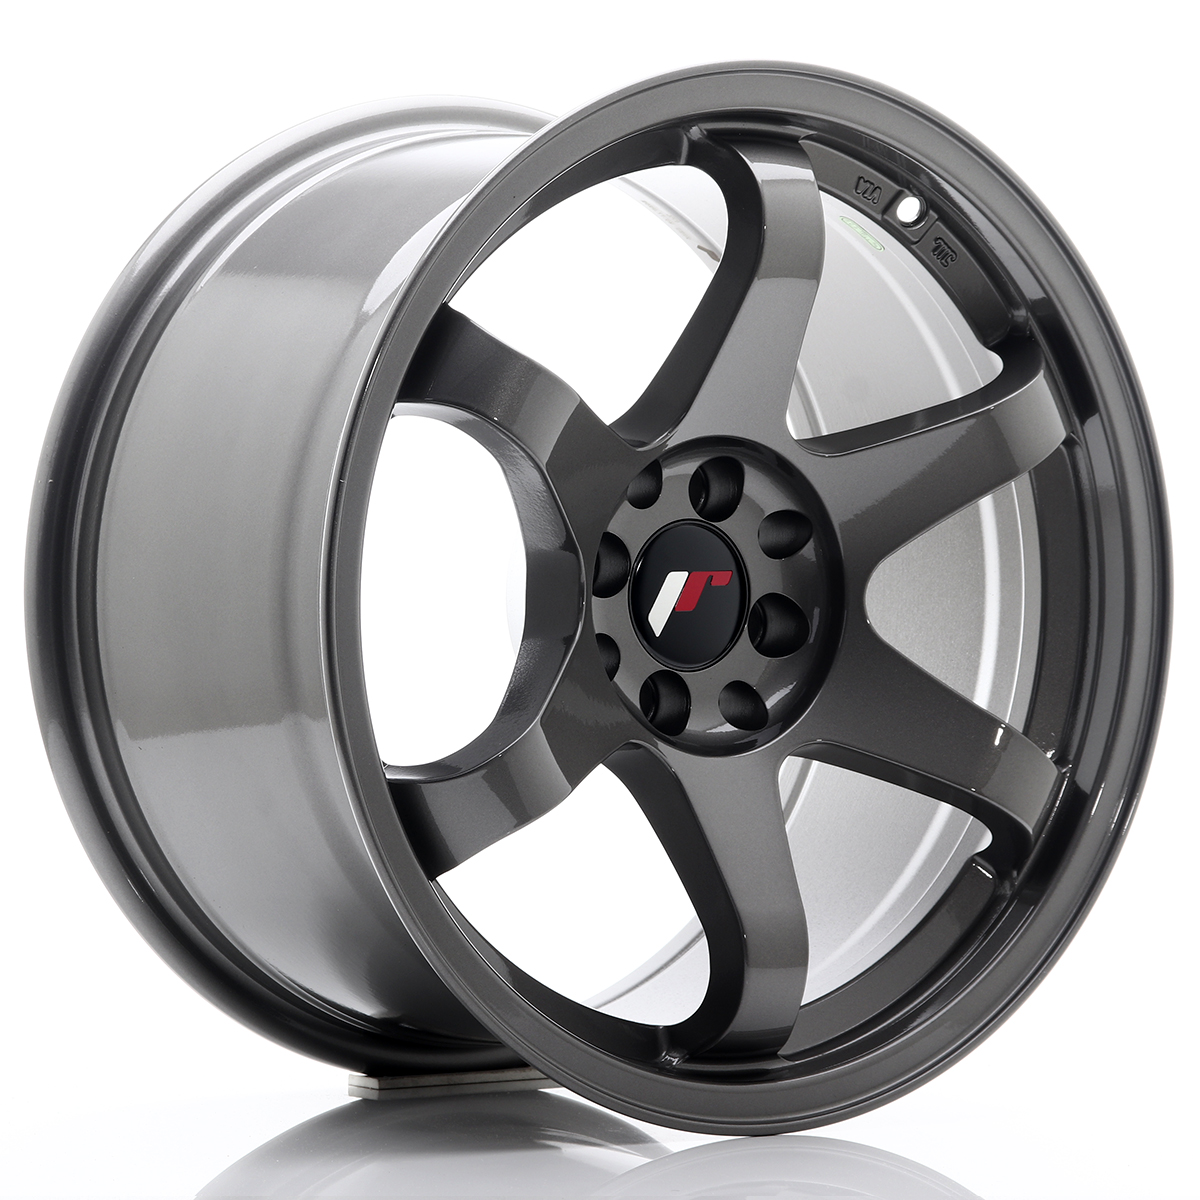 JR Wheels JR3 17x9 ET25 4x108/114, 3 Gun Metal